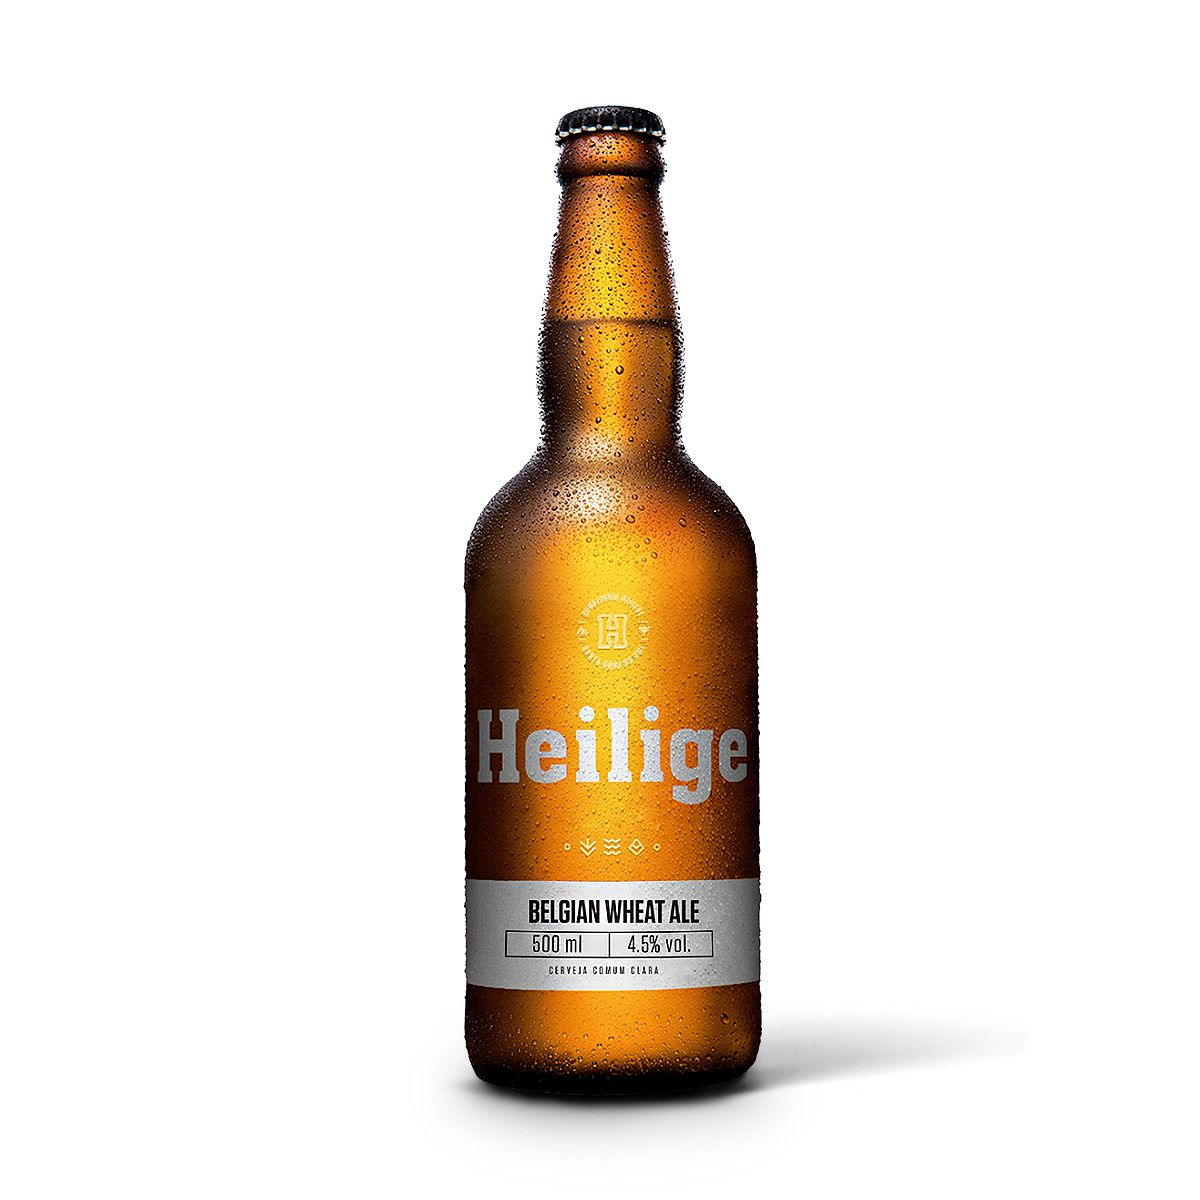 Heilige Belgian Wheat Ale 500ml